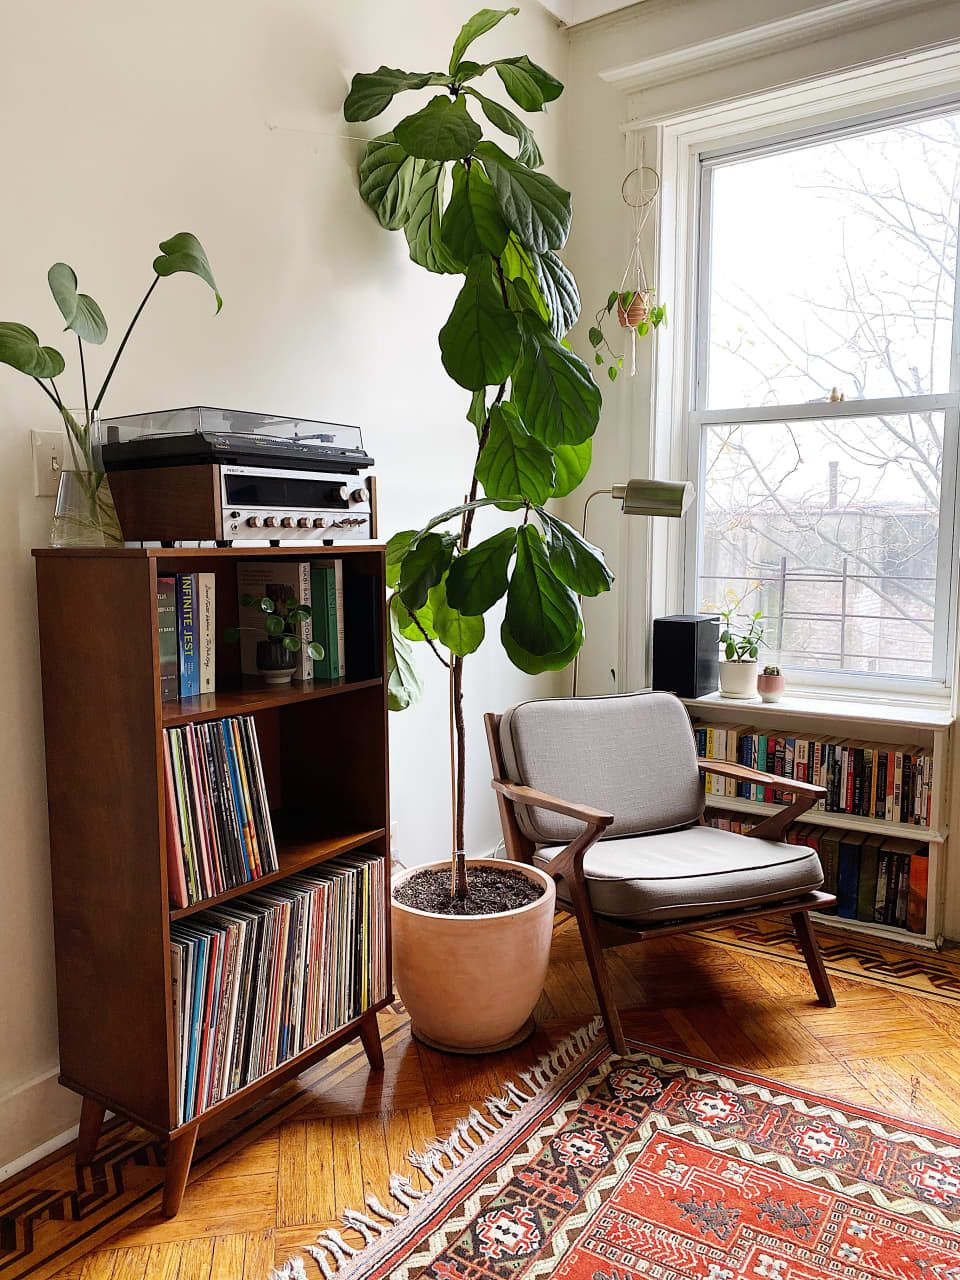 Vote on A Minimalist, Vintage, Modern Small/Cool Space in the Small/Cool Contest